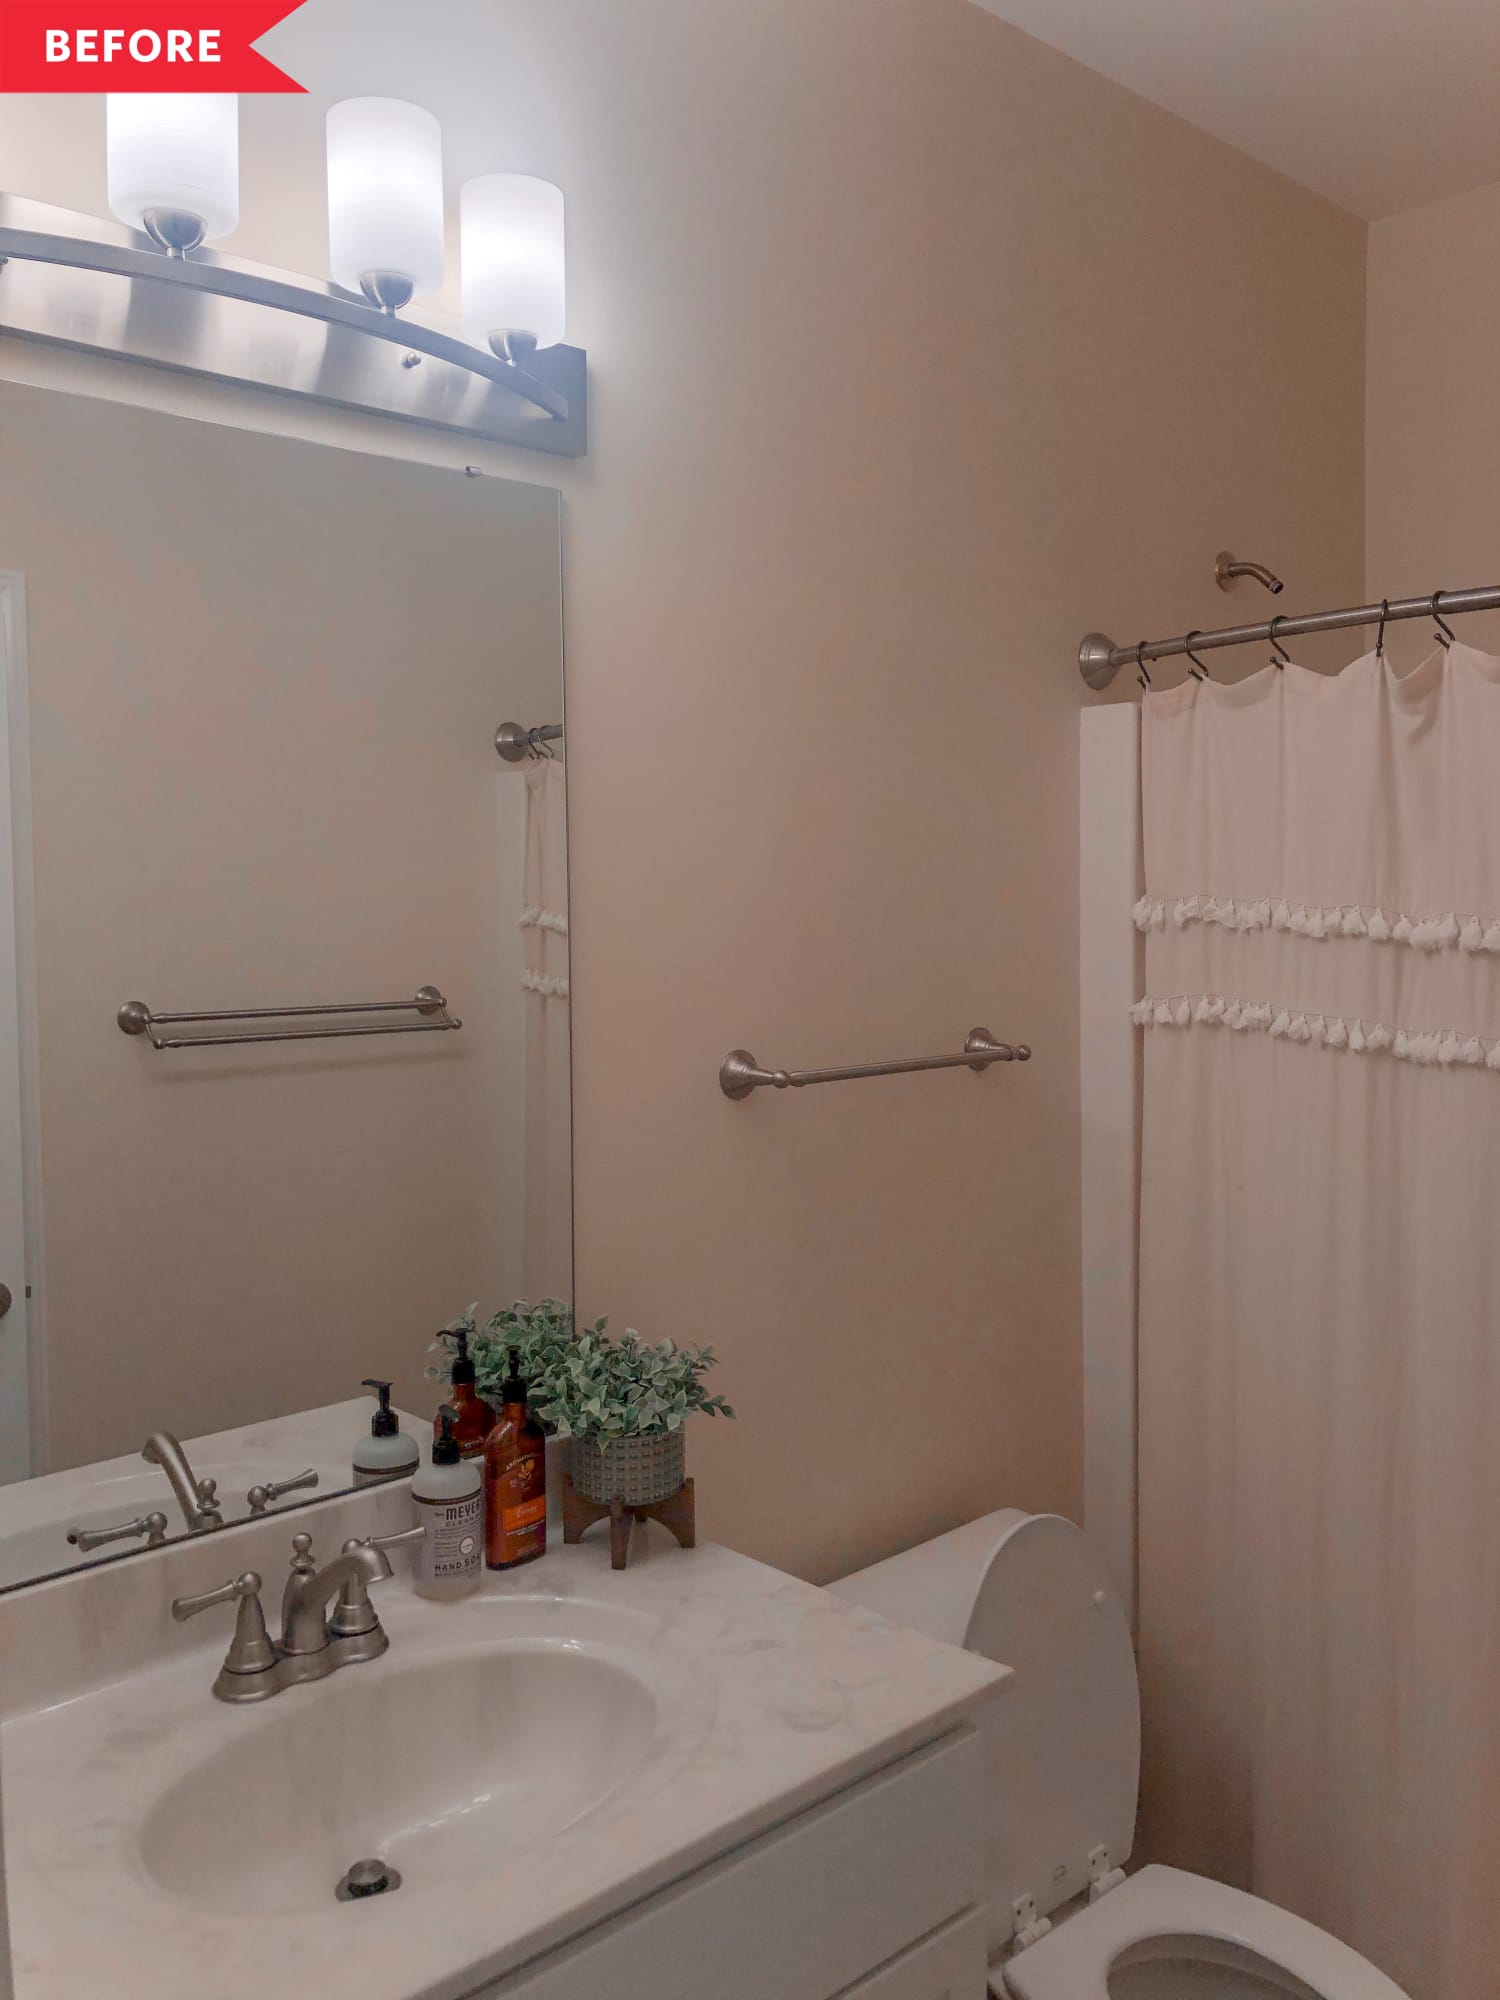 Before and After: This Boho-Happy Bathroom Redo Shows How Far $160 Can Go